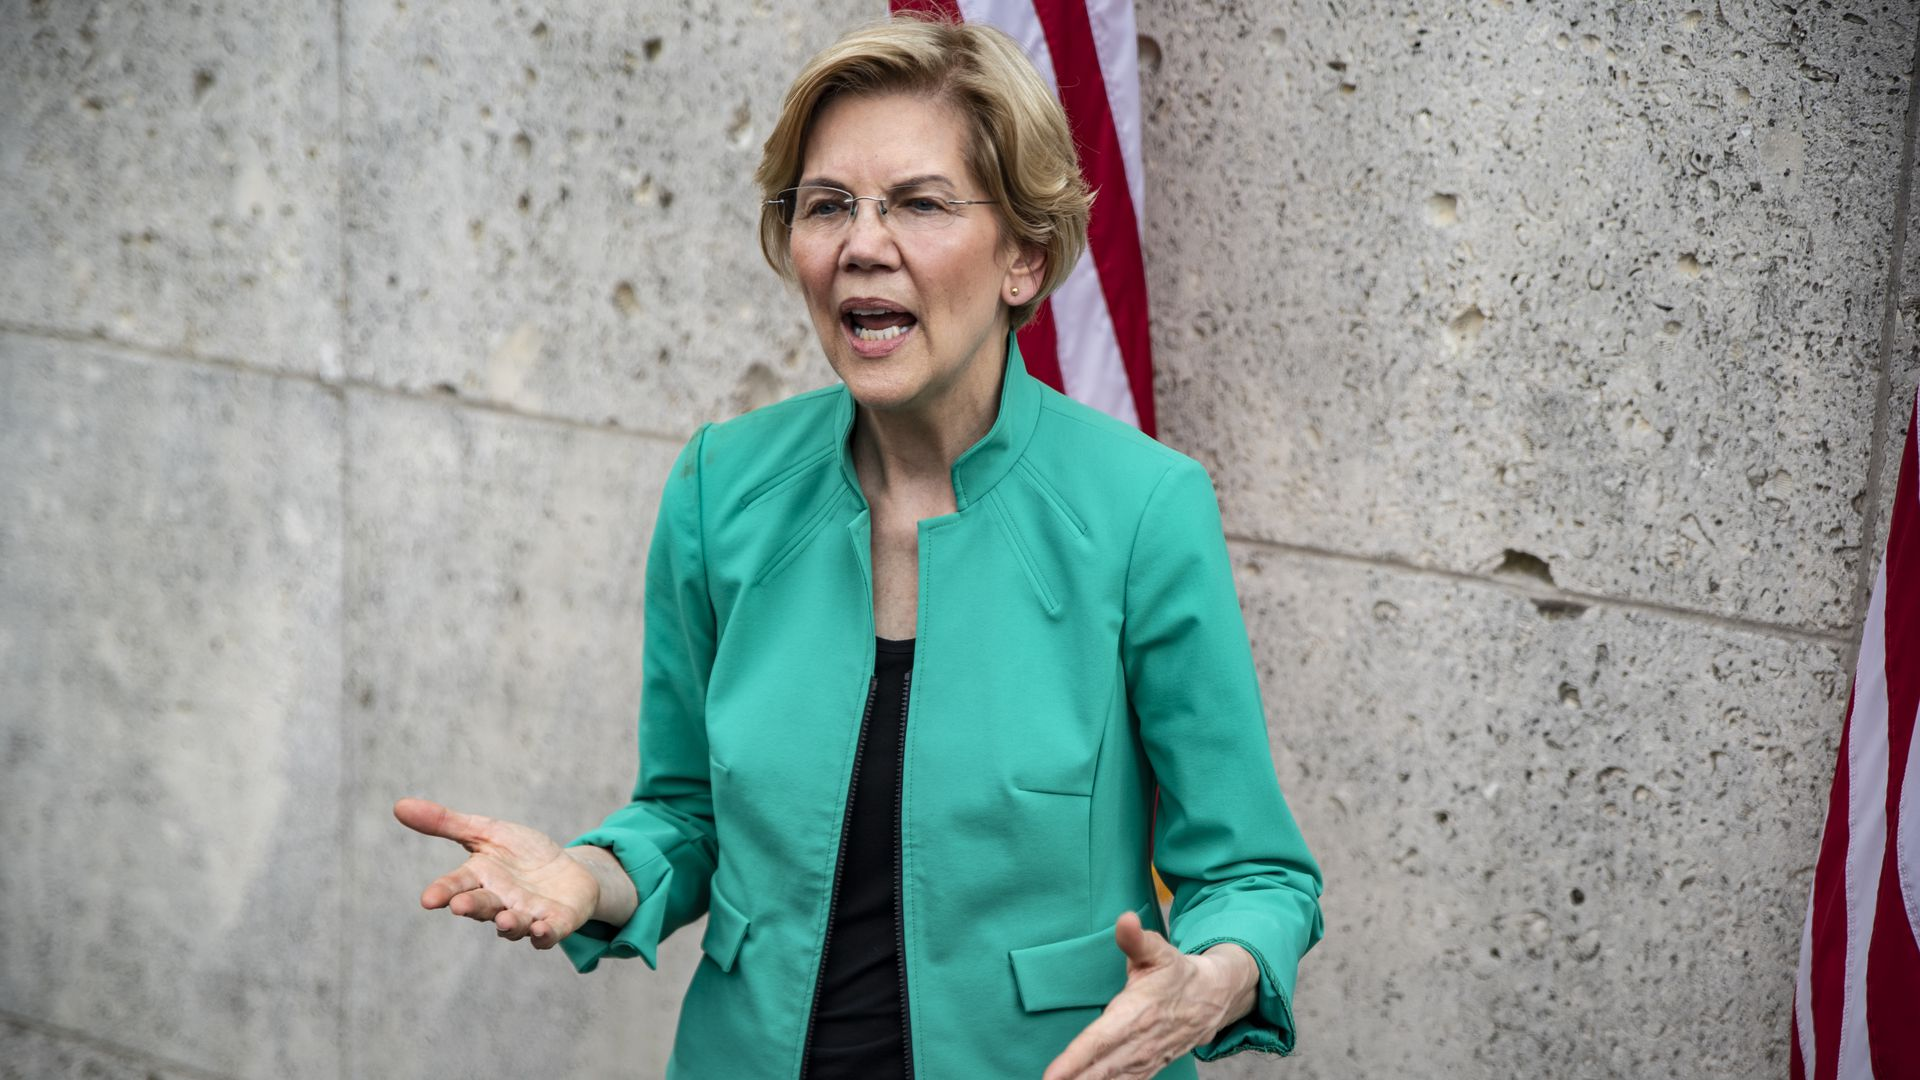 Warren's college debt plan benefits those who earn more